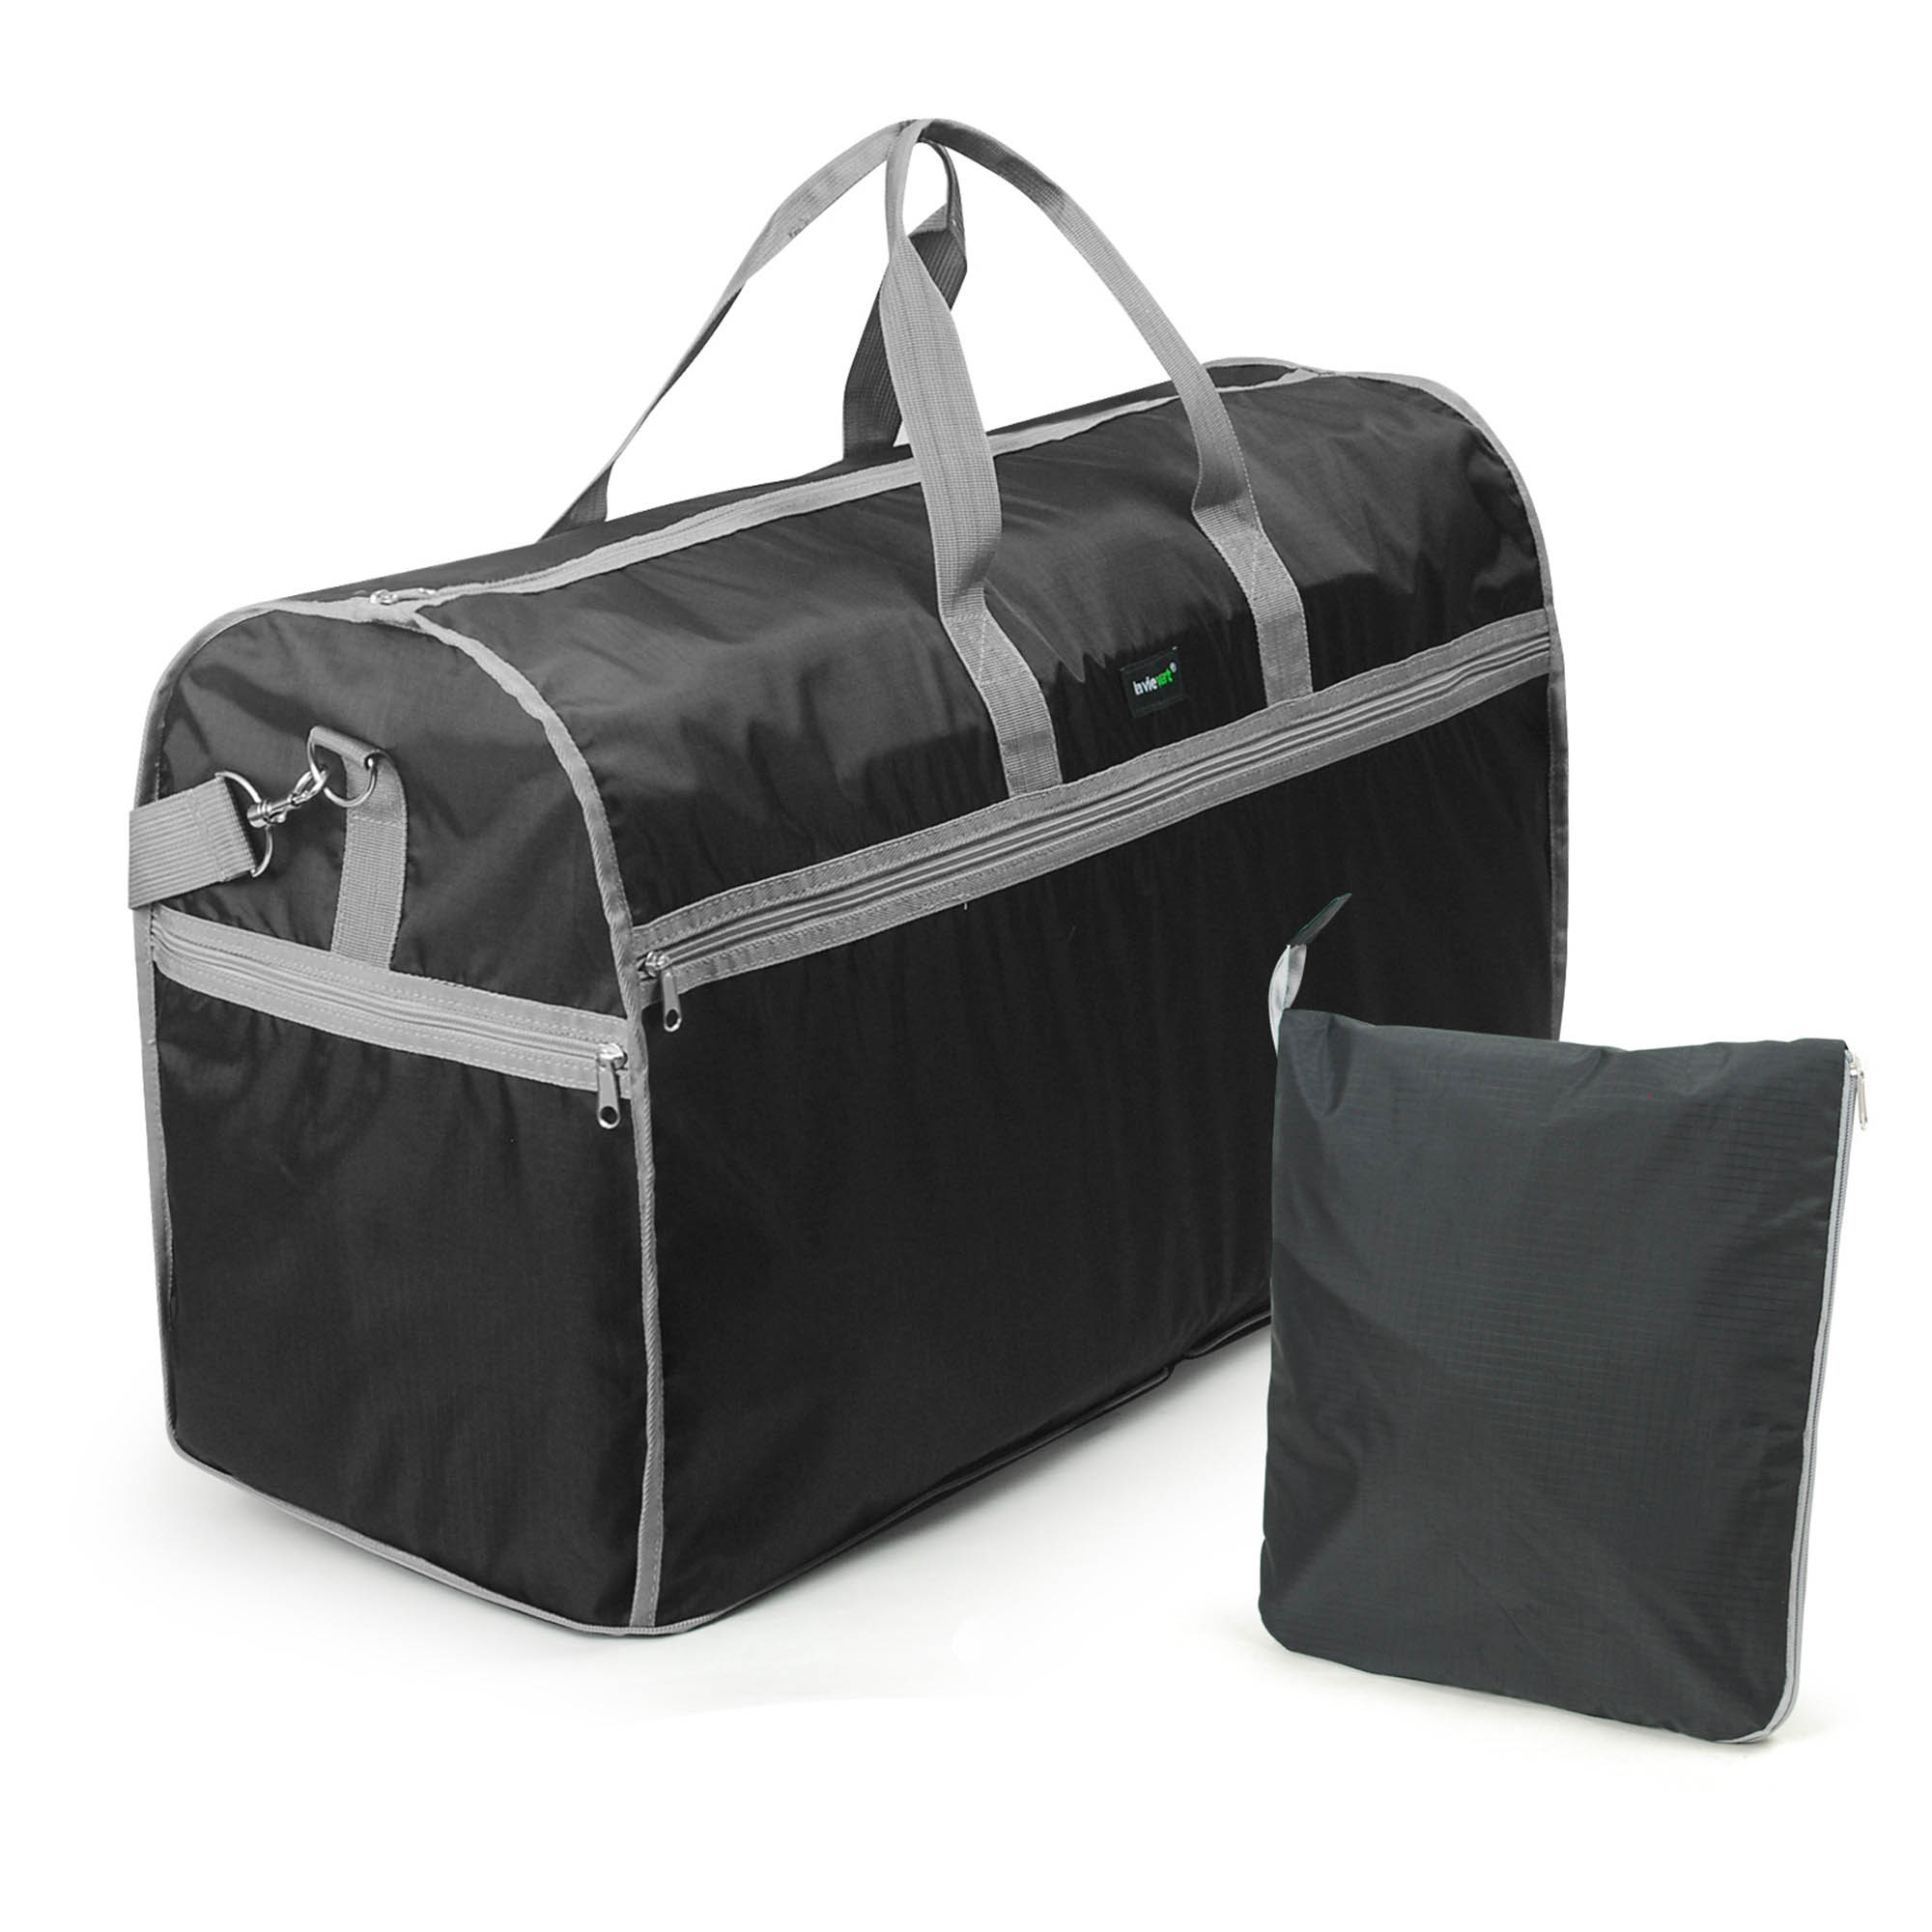 Lavievert Foldable Travel Duffle Bag Attached to Luggage by Lavievert